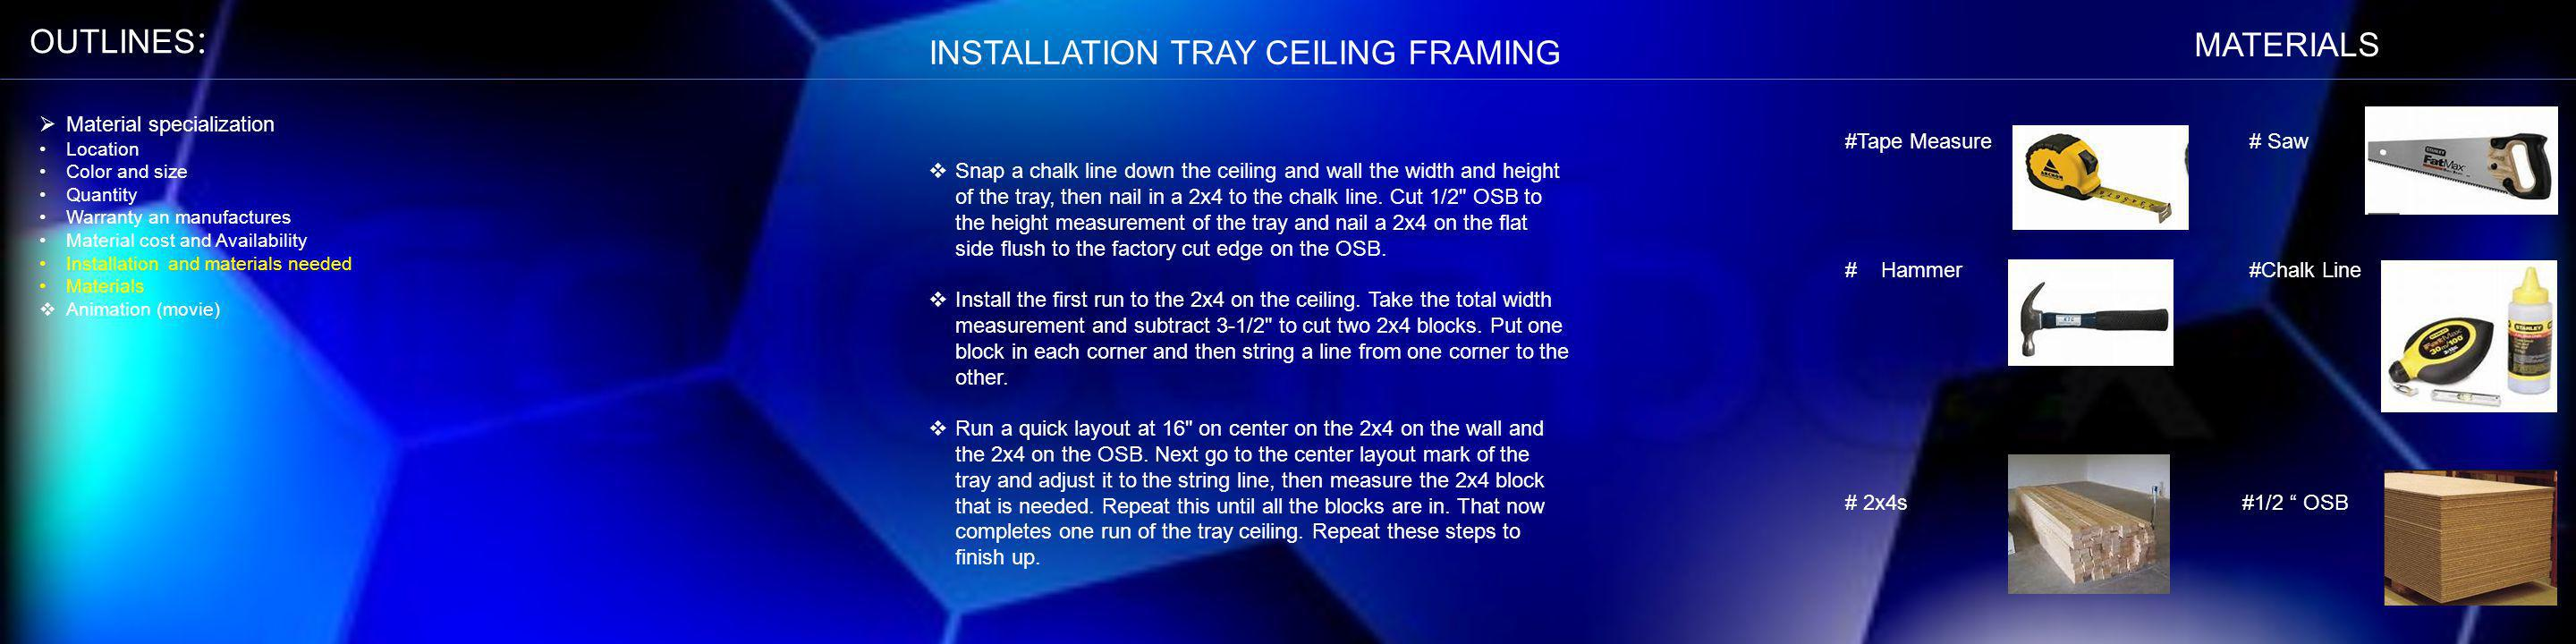 INSTALLATION TRAY CEILING FRAMING Snap a chalk line down the ceiling and wall the width and height of the tray, then nail in a 2x4 to the chalk line.